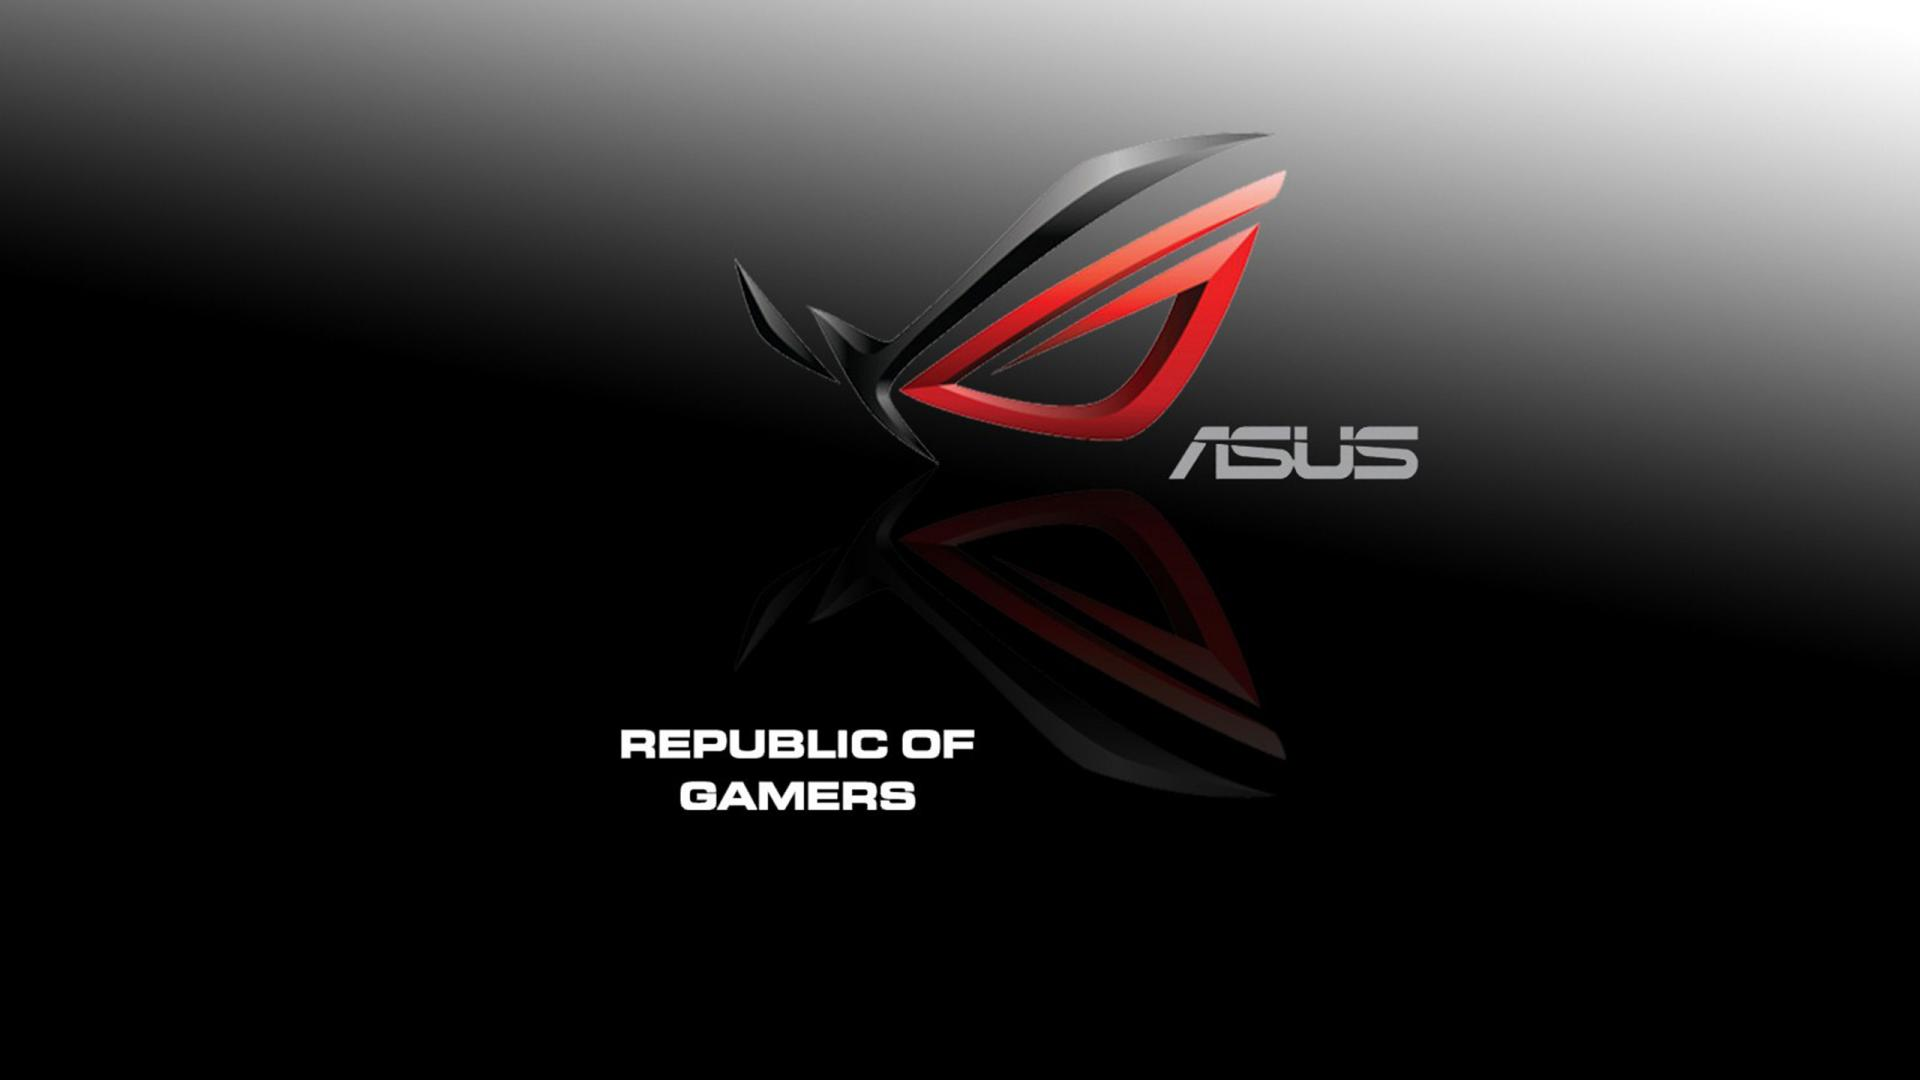 Asus wallpaper full hd wallpapersafari - Asus x series wallpaper hd ...